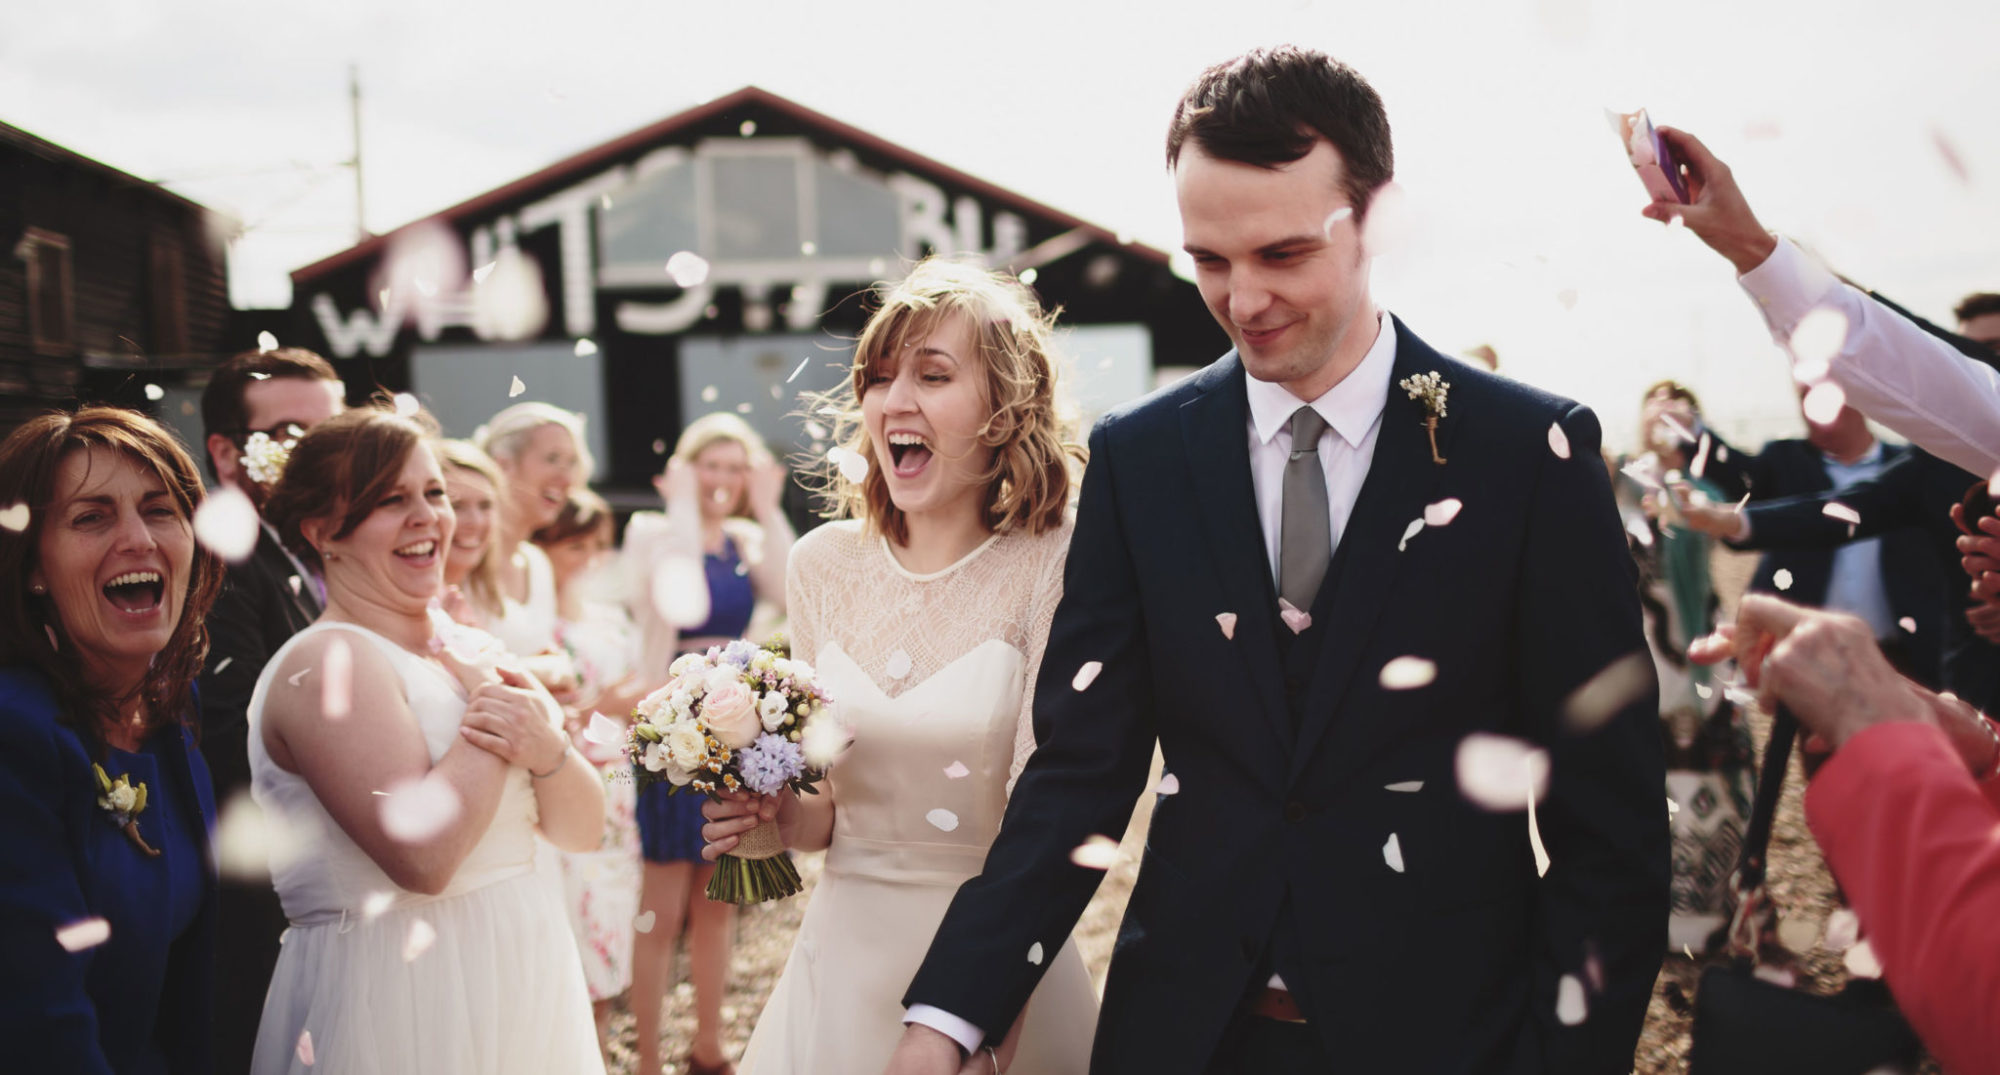 Bride and Groom showered in confetti after their wedding at East Quay in Kent